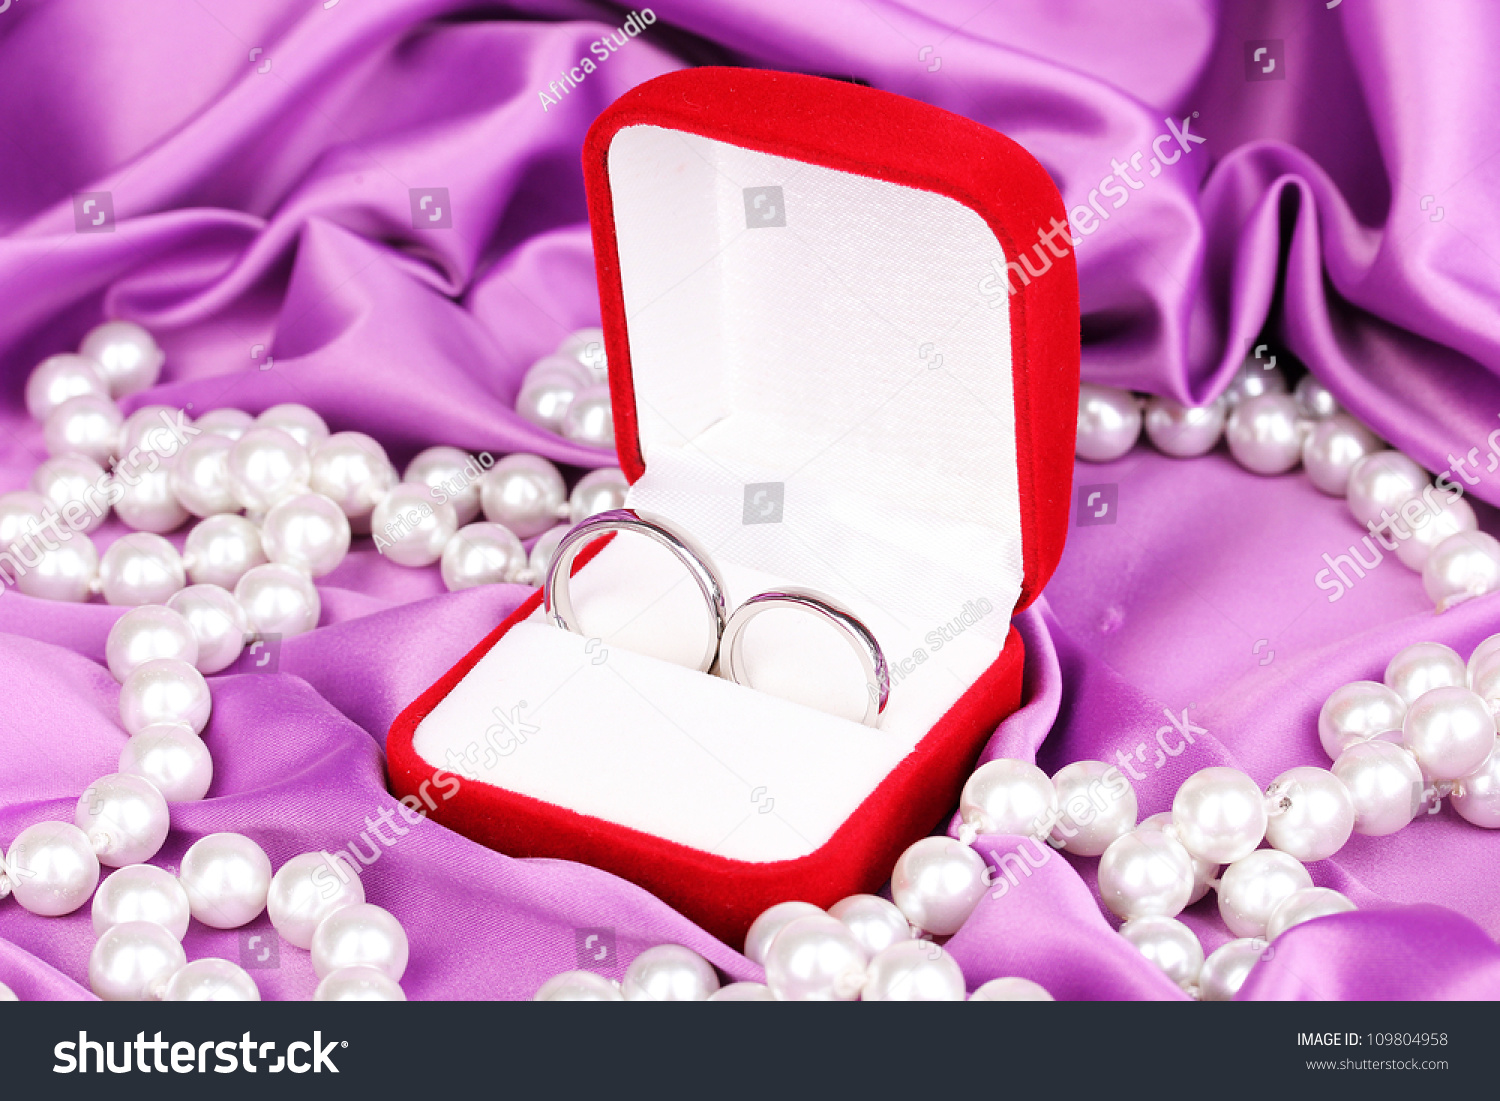 wedding rings red box on purple stock photo 109804958